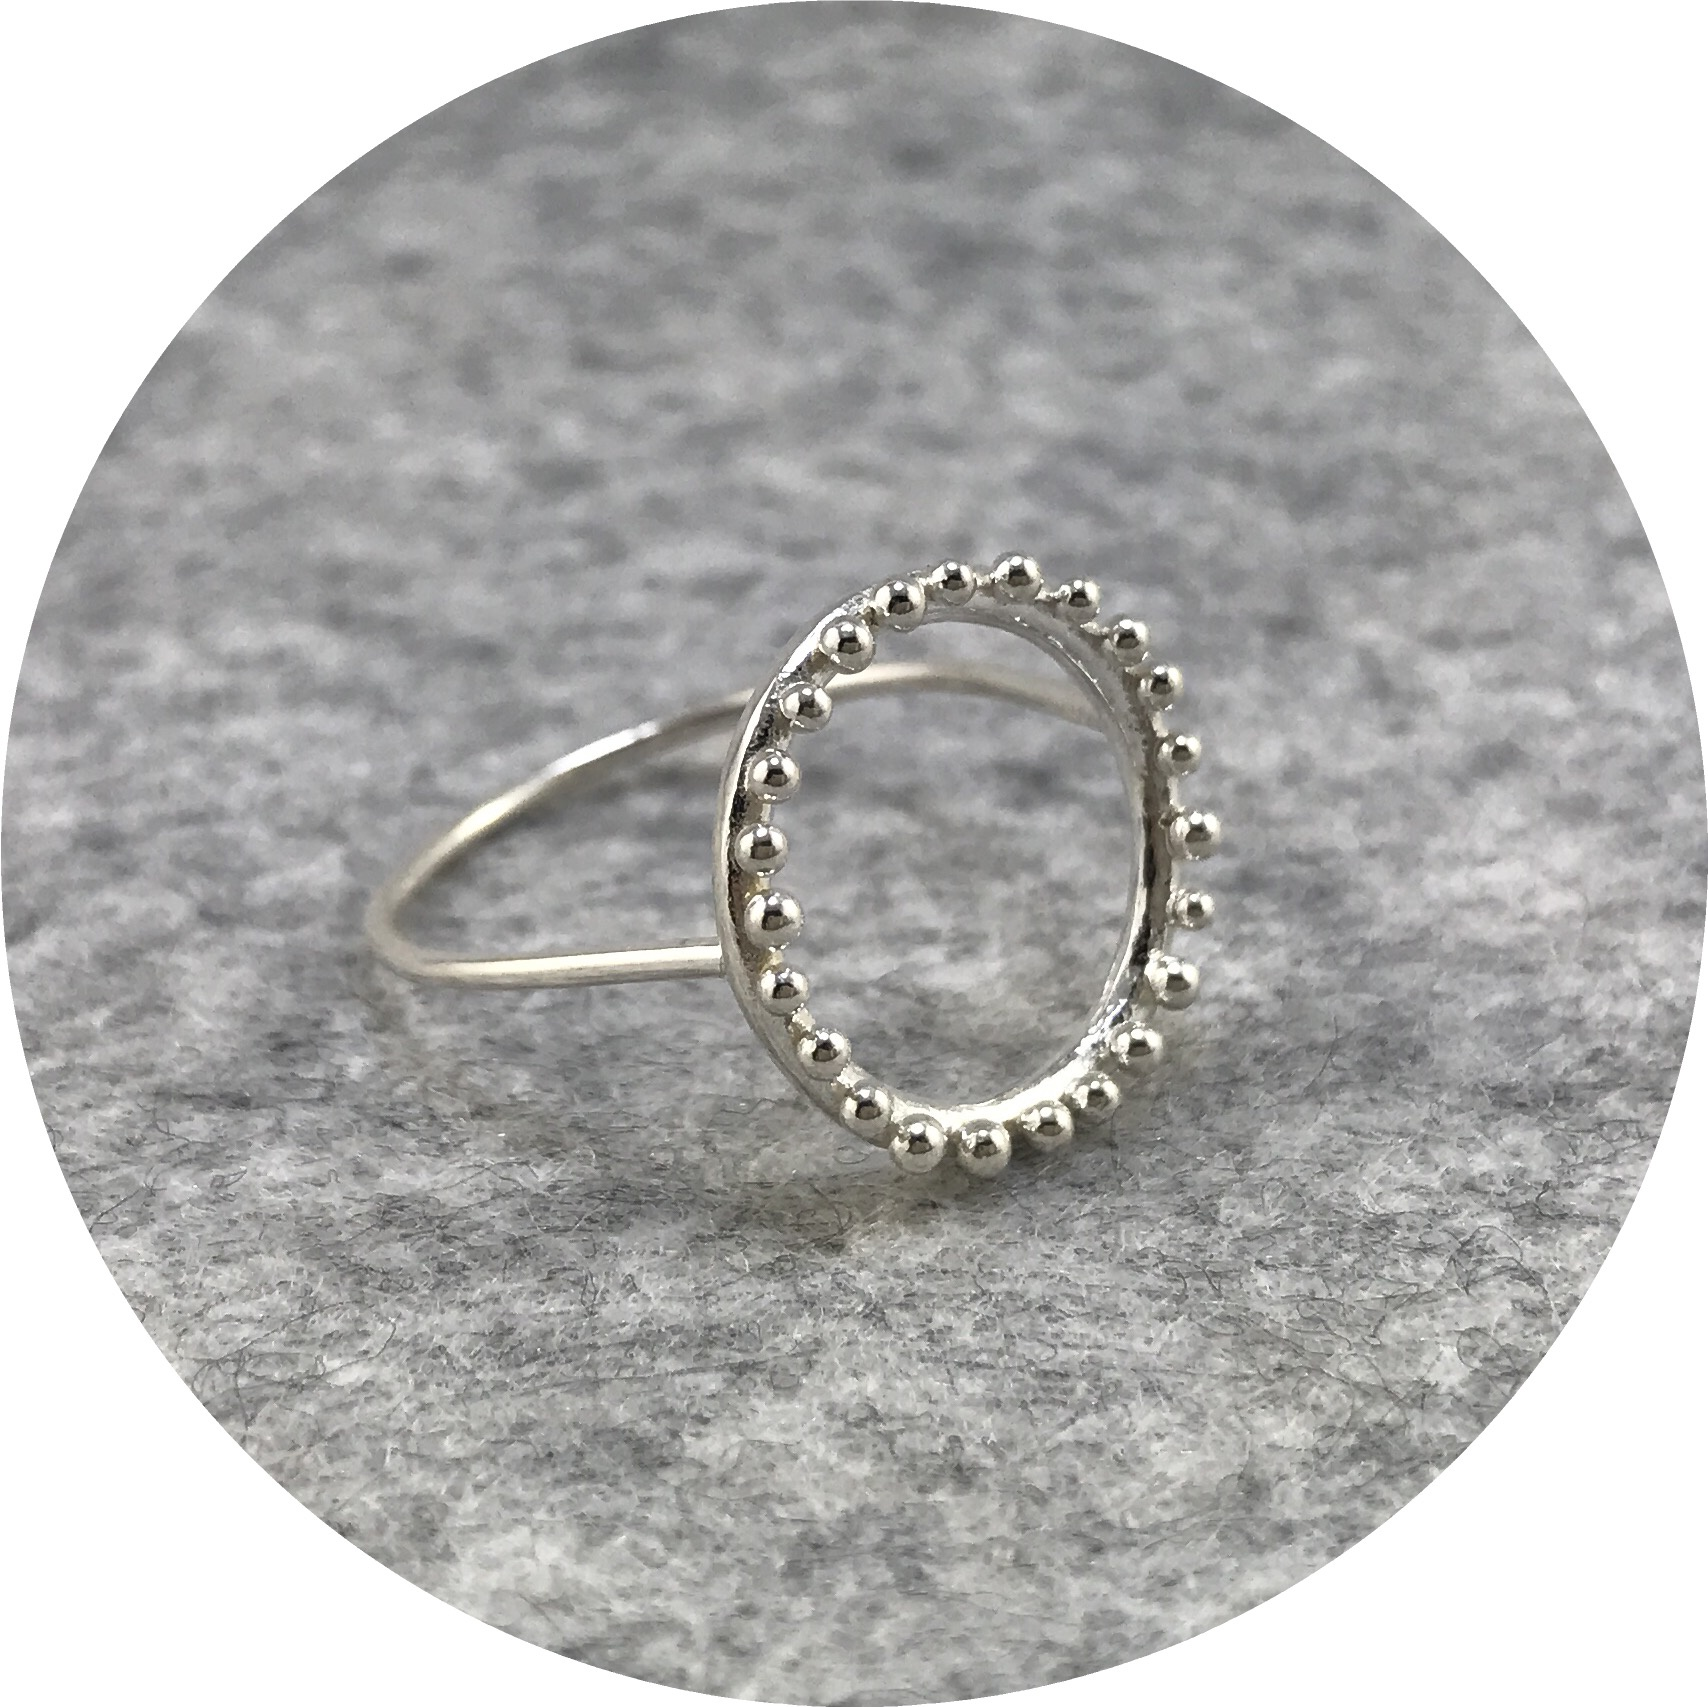 Abby Seymour- Cloud Ring. Sterling silver, size Q1/2.